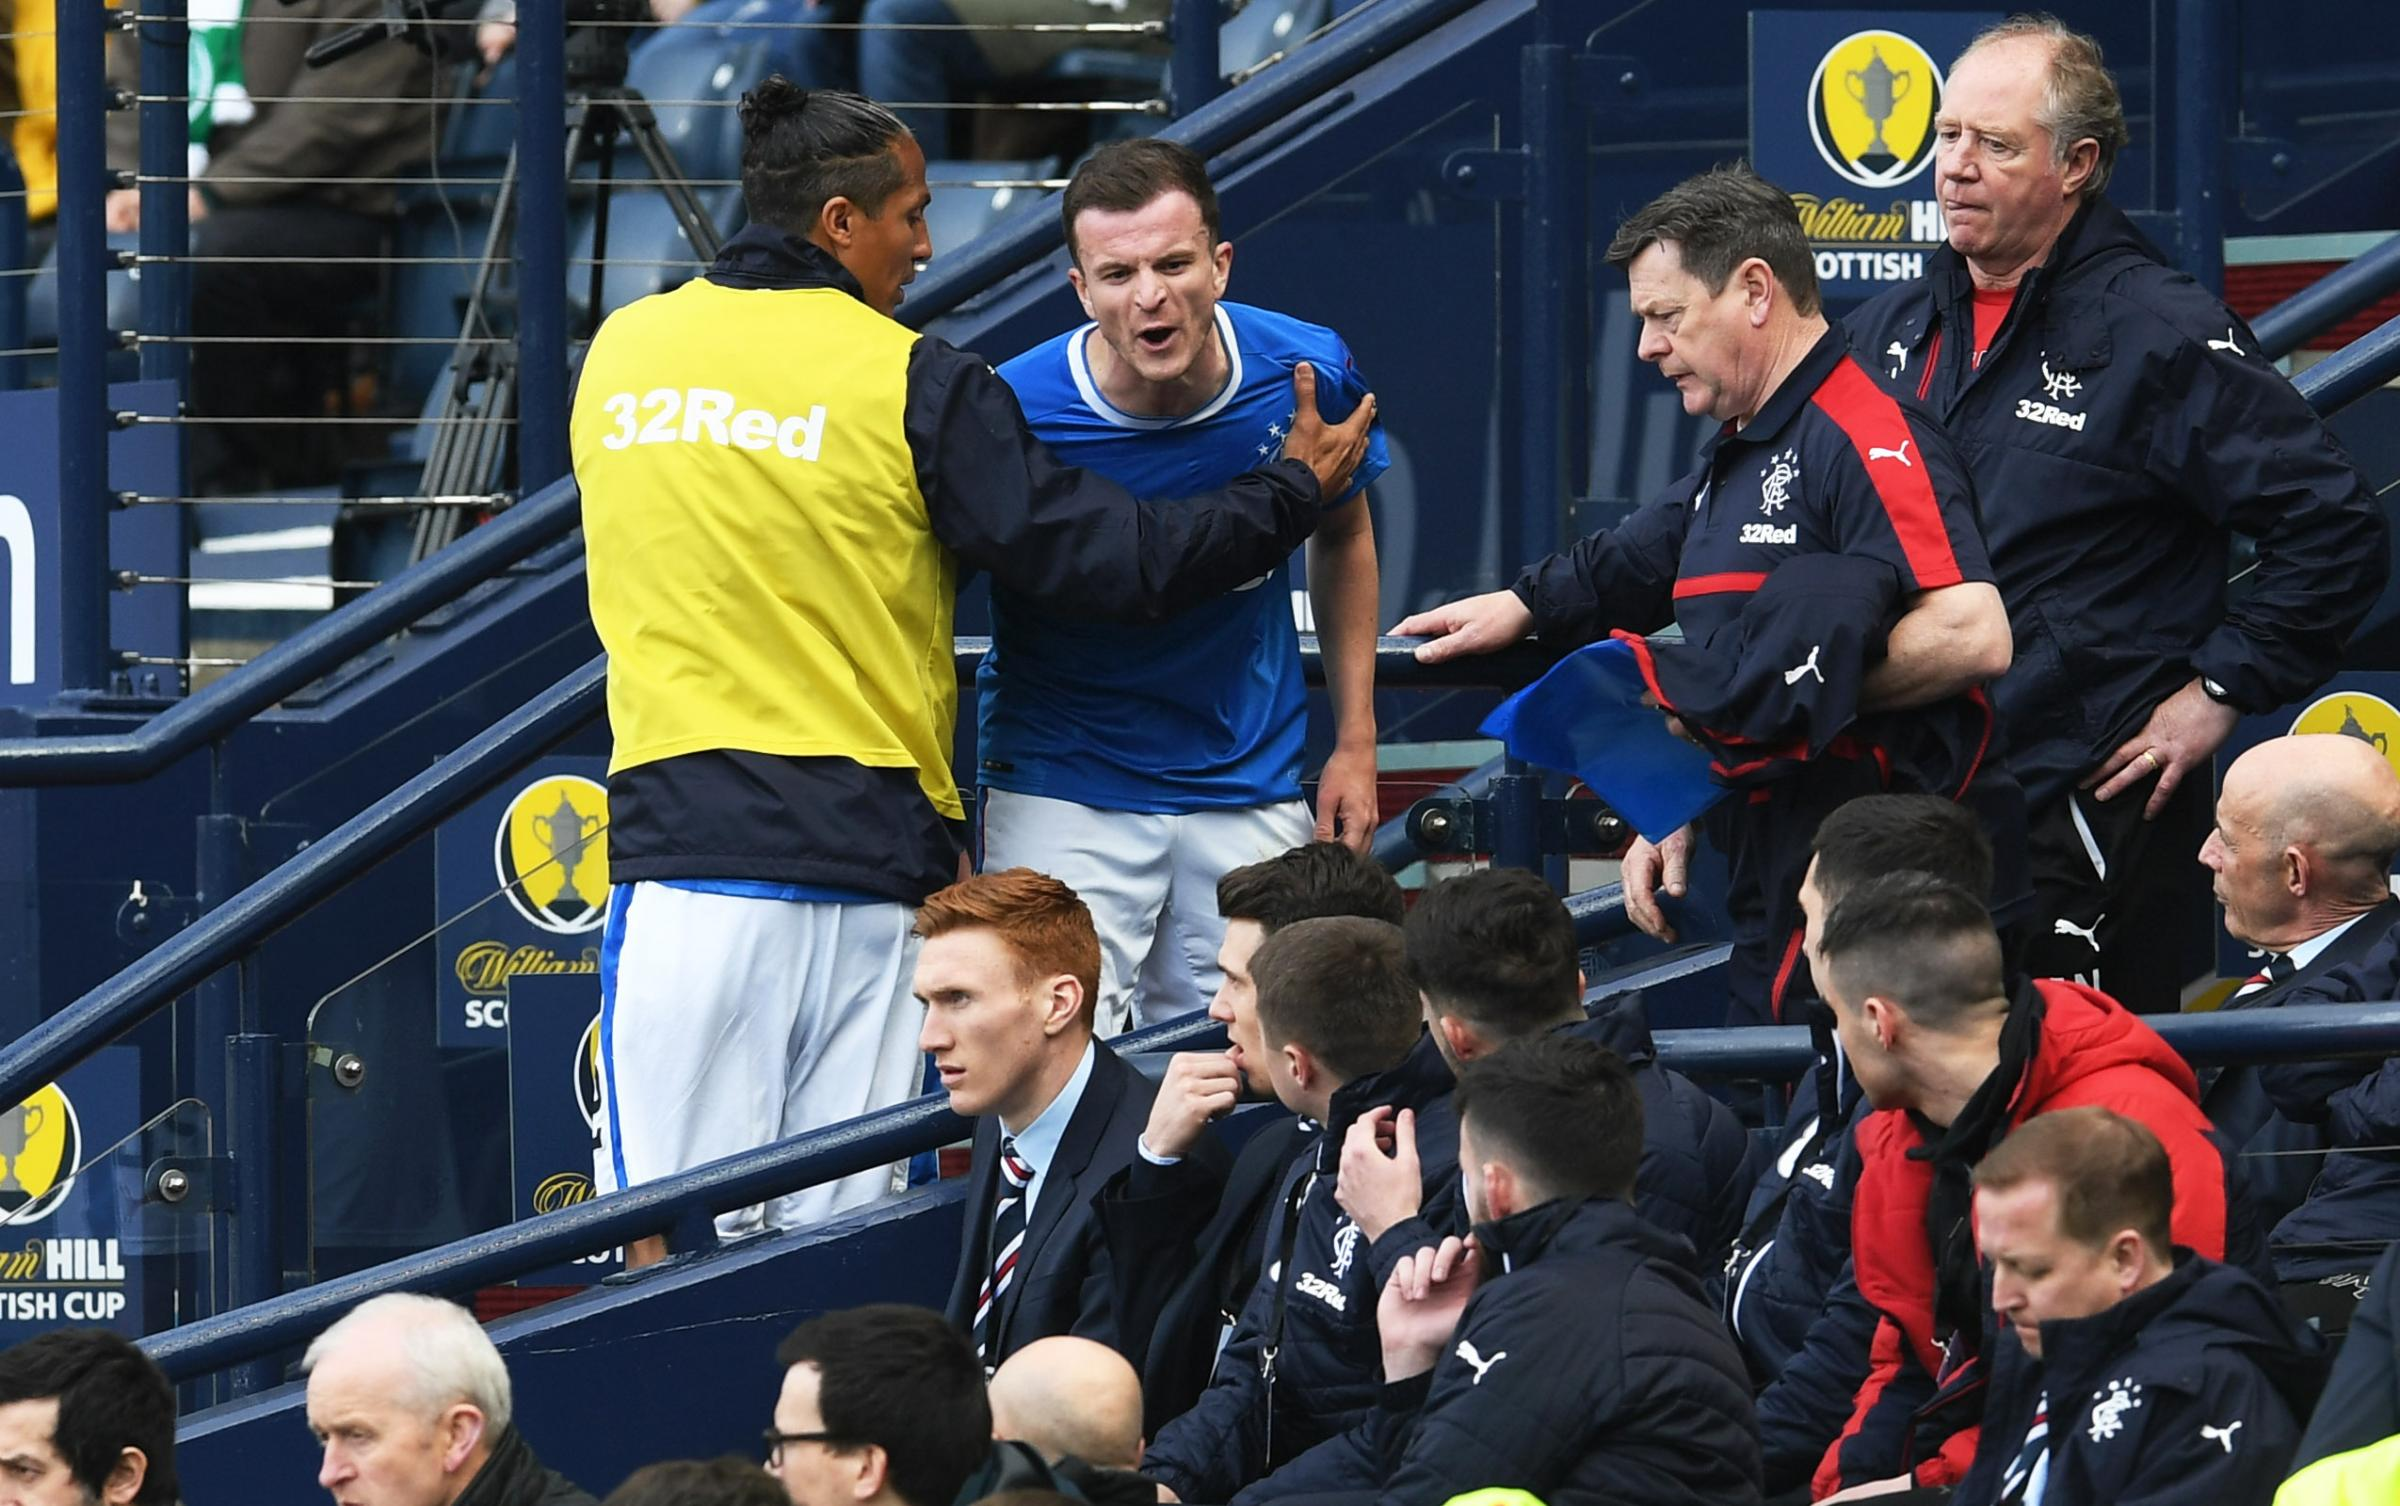 Rangers' Andy Halliday (centre) shows his frustrations after being substituted..